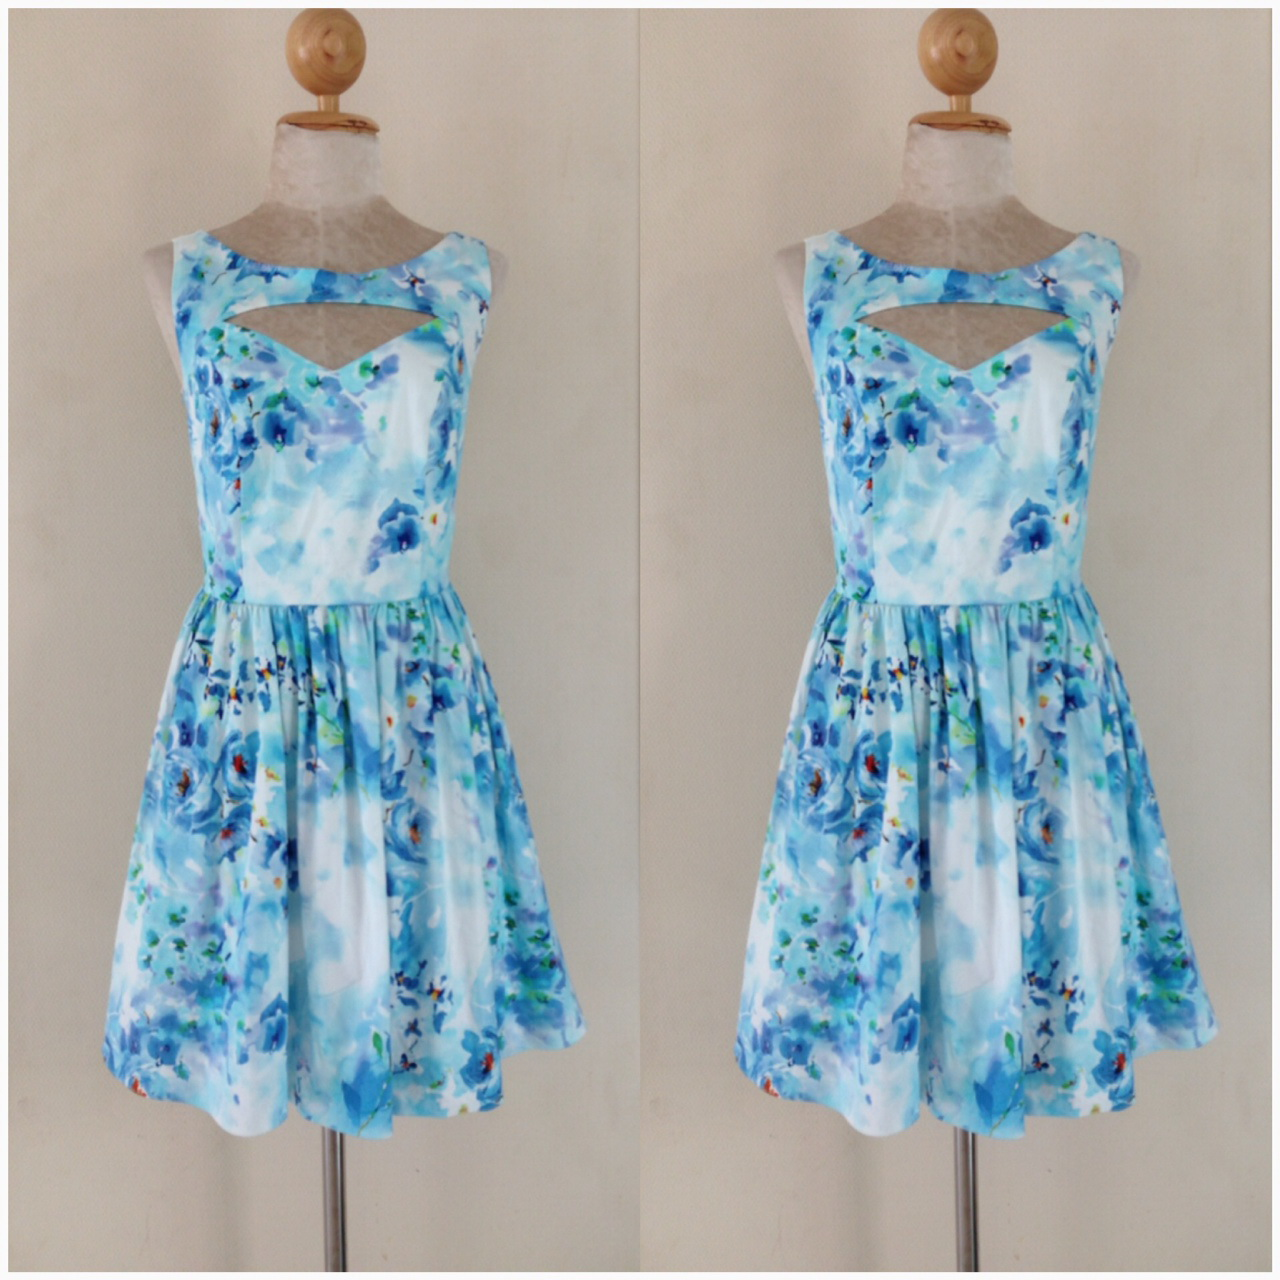 Primark Dress Size Uk8-Uk10